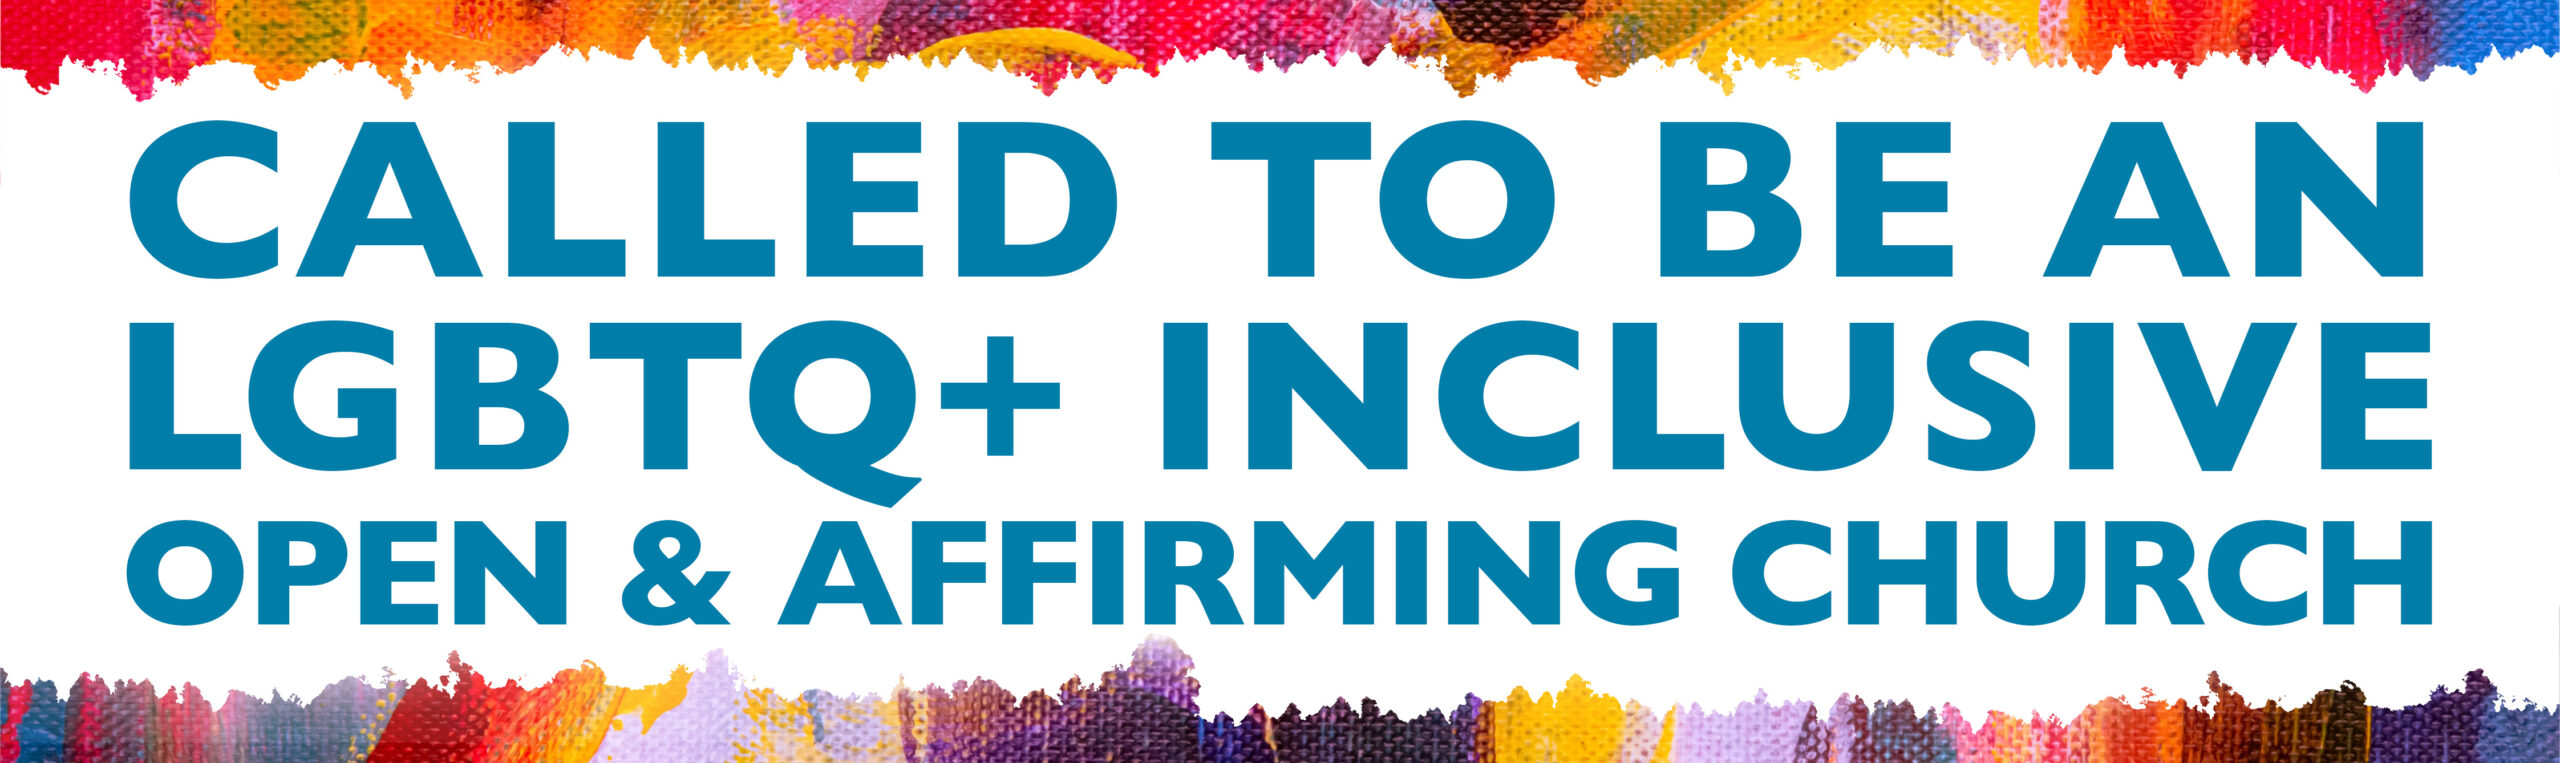 Called to be an LGBTQ+ Inclusive Open & Affirming Church